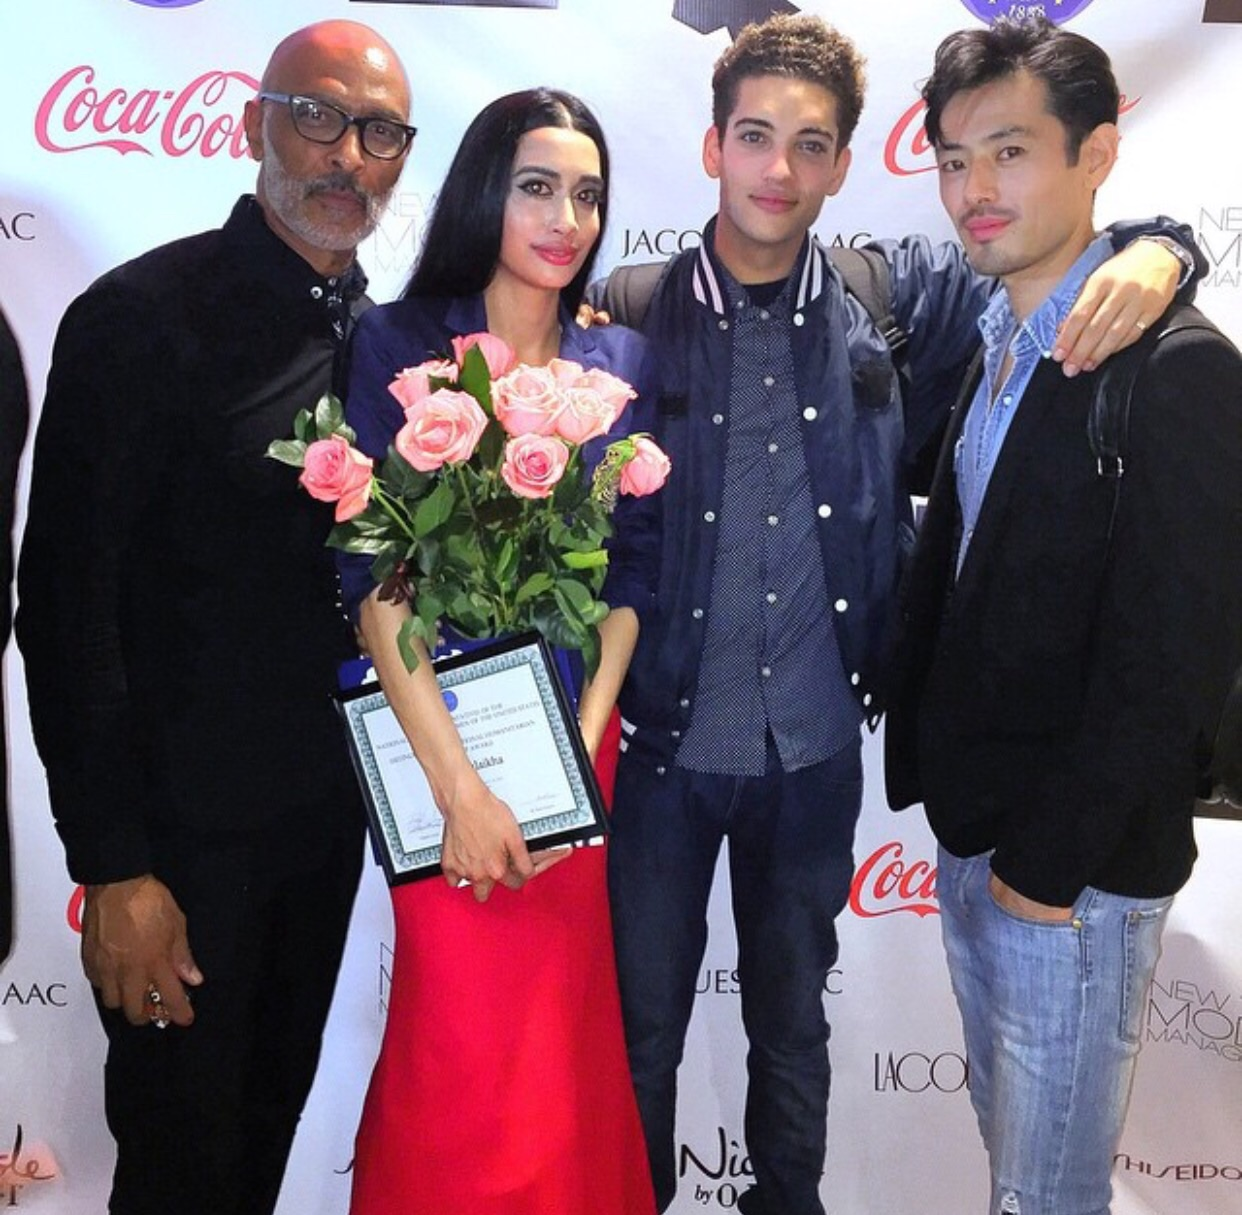 With these amazing male models from New York Model Management!